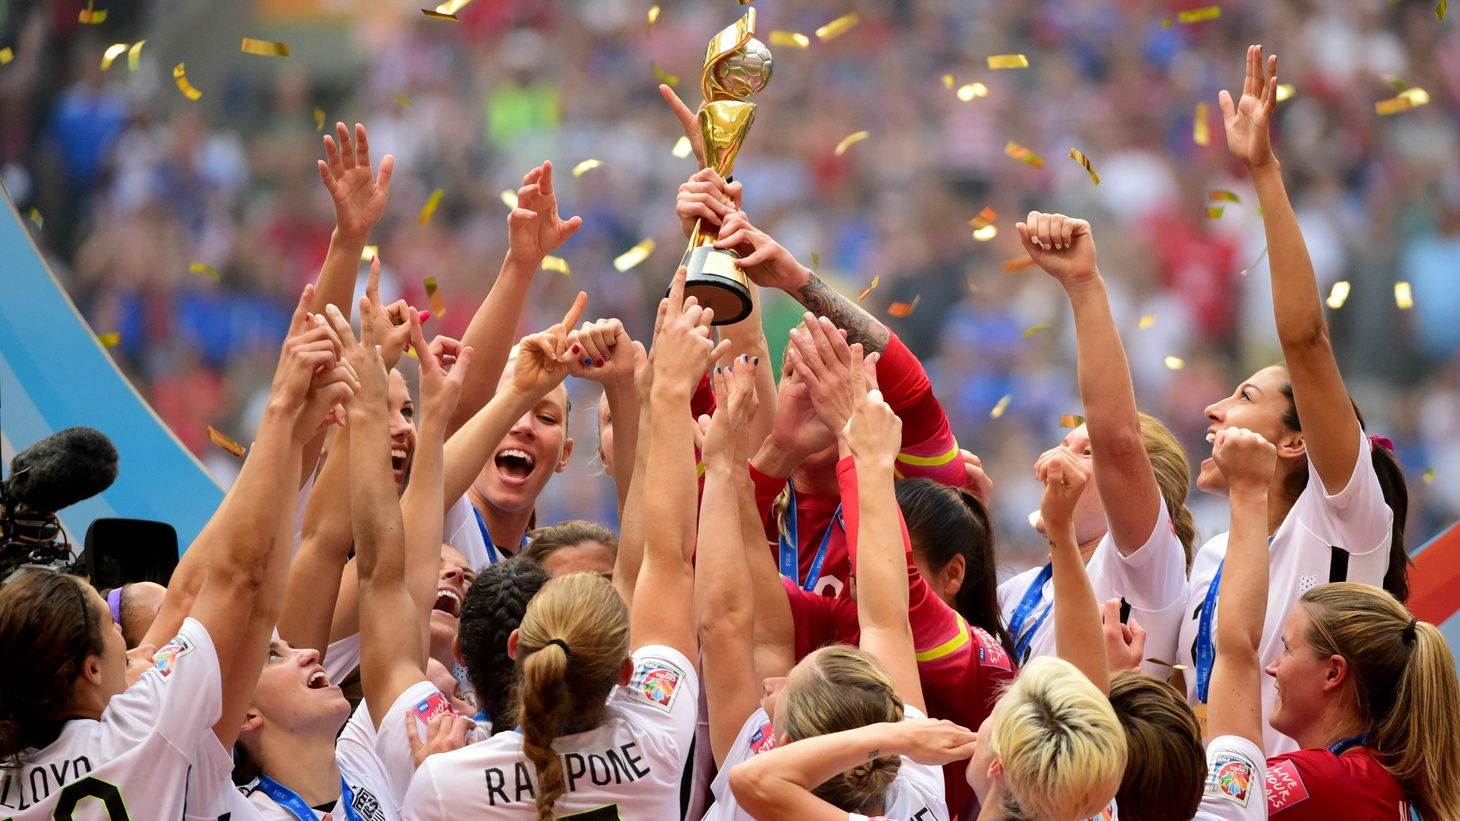 After their impressive World Cup win, will the women of US soccer get a more impressive bite out of the endorsement apple? Also, how the U.S. Chamber of Commerce has become a political juggernaut for many corporate causes that go against the public good.